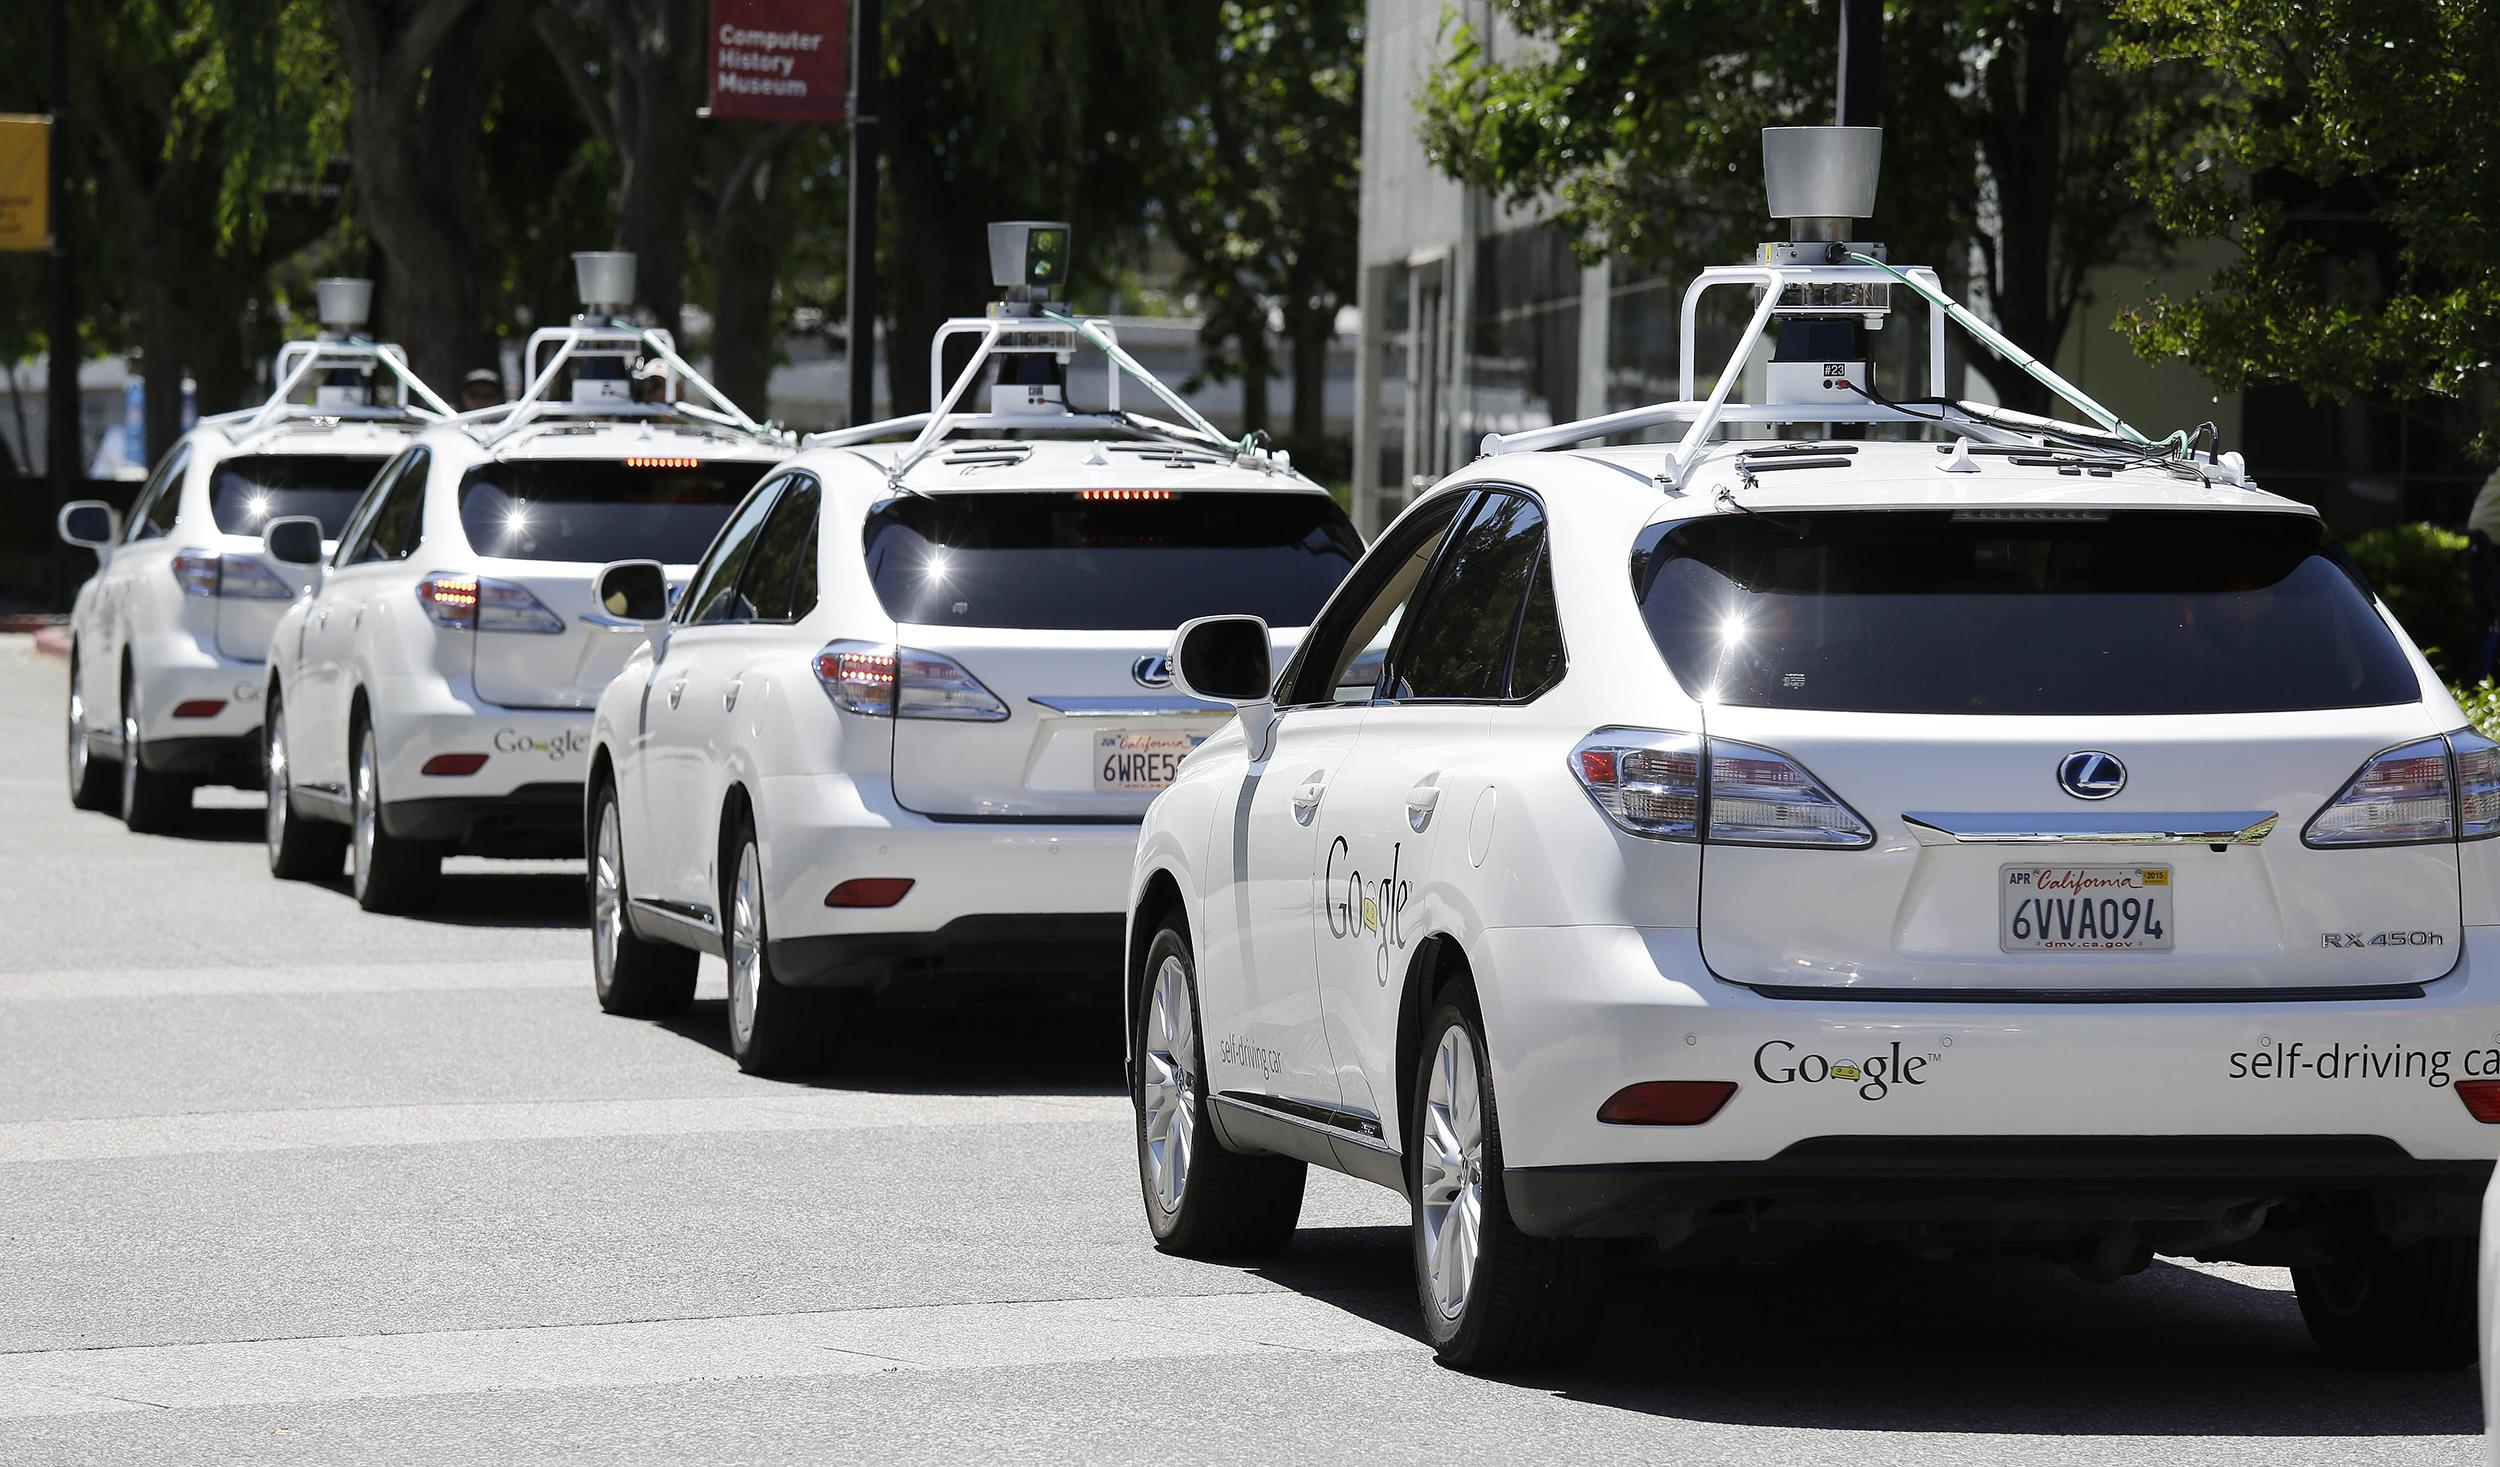 Get Ready for Google's Self-Driven Car